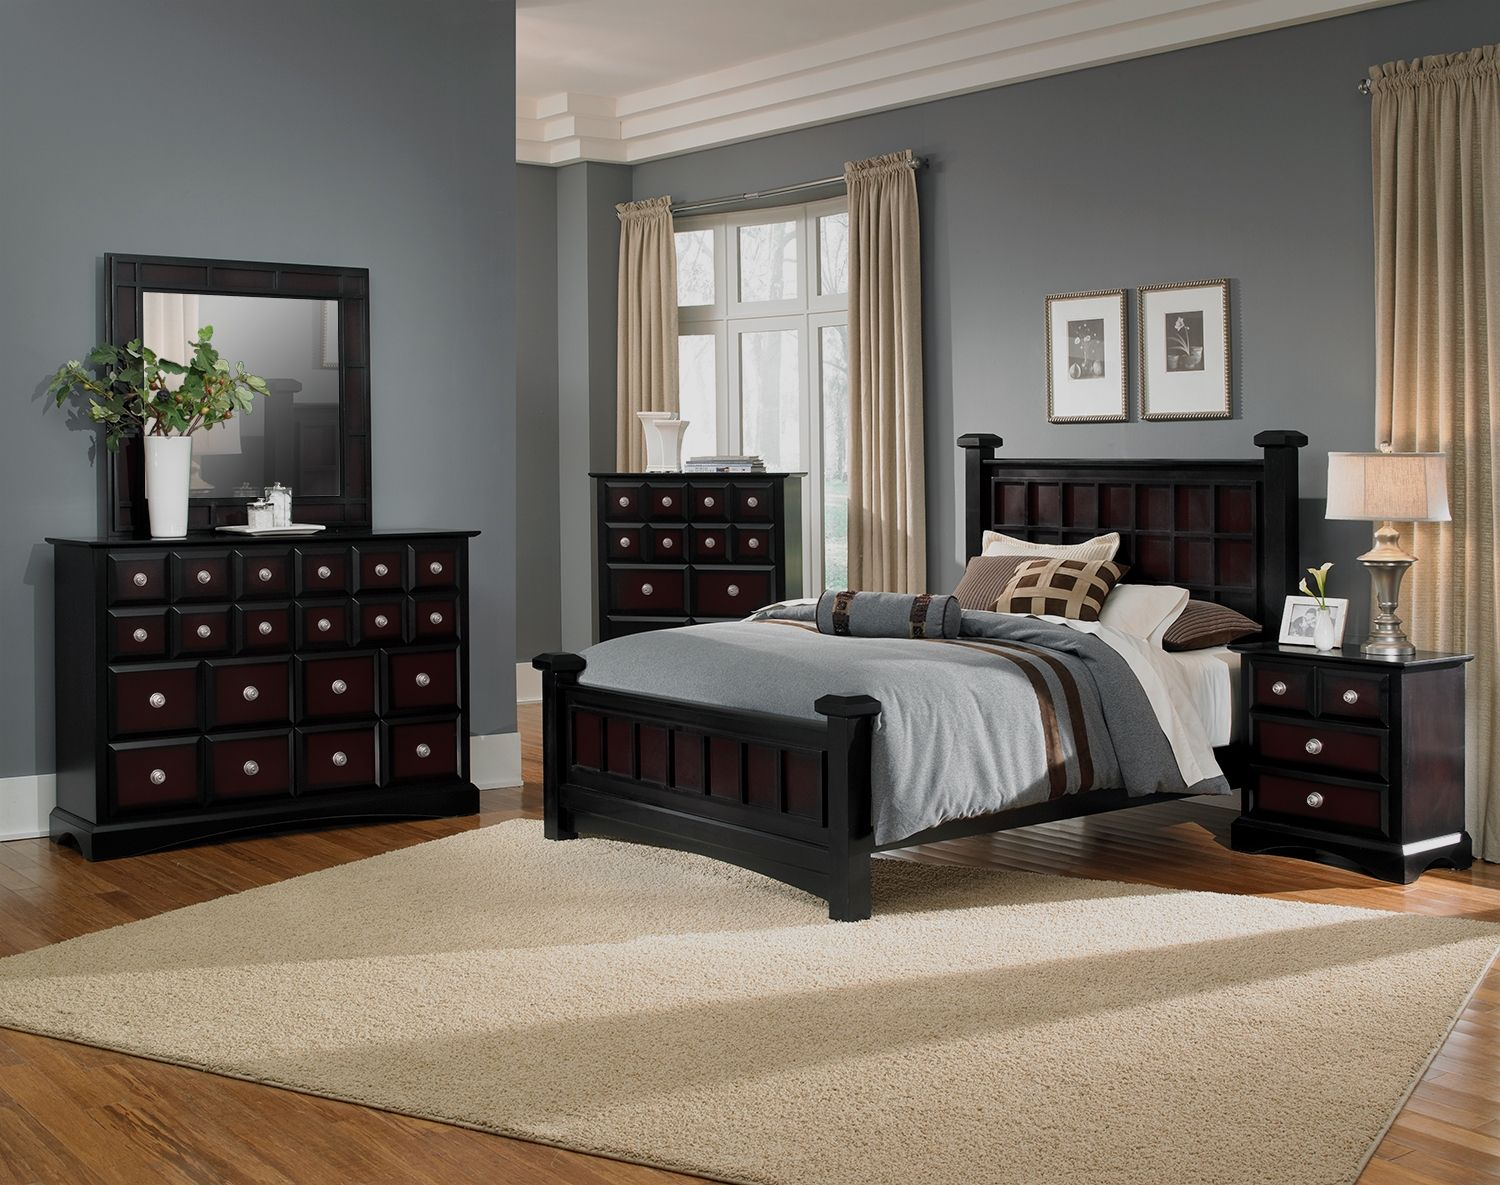 Derbyshire Bedroom Collection | Furniture.com-Queen Bed $399.99 ...